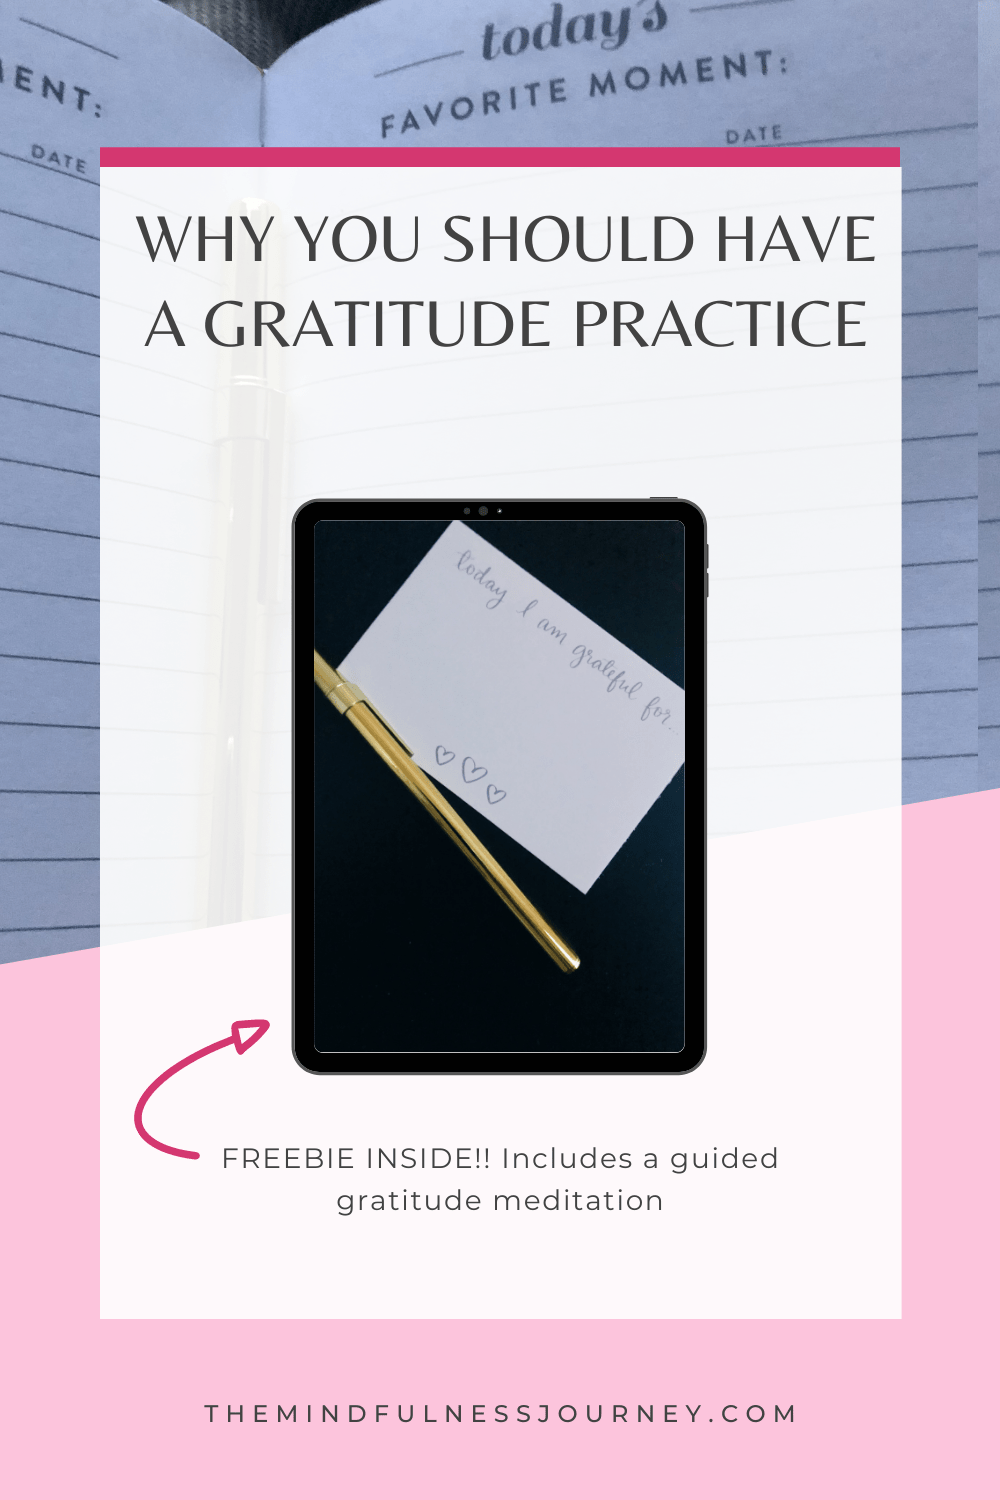 why you should have a gratitude practice + free guided meditation